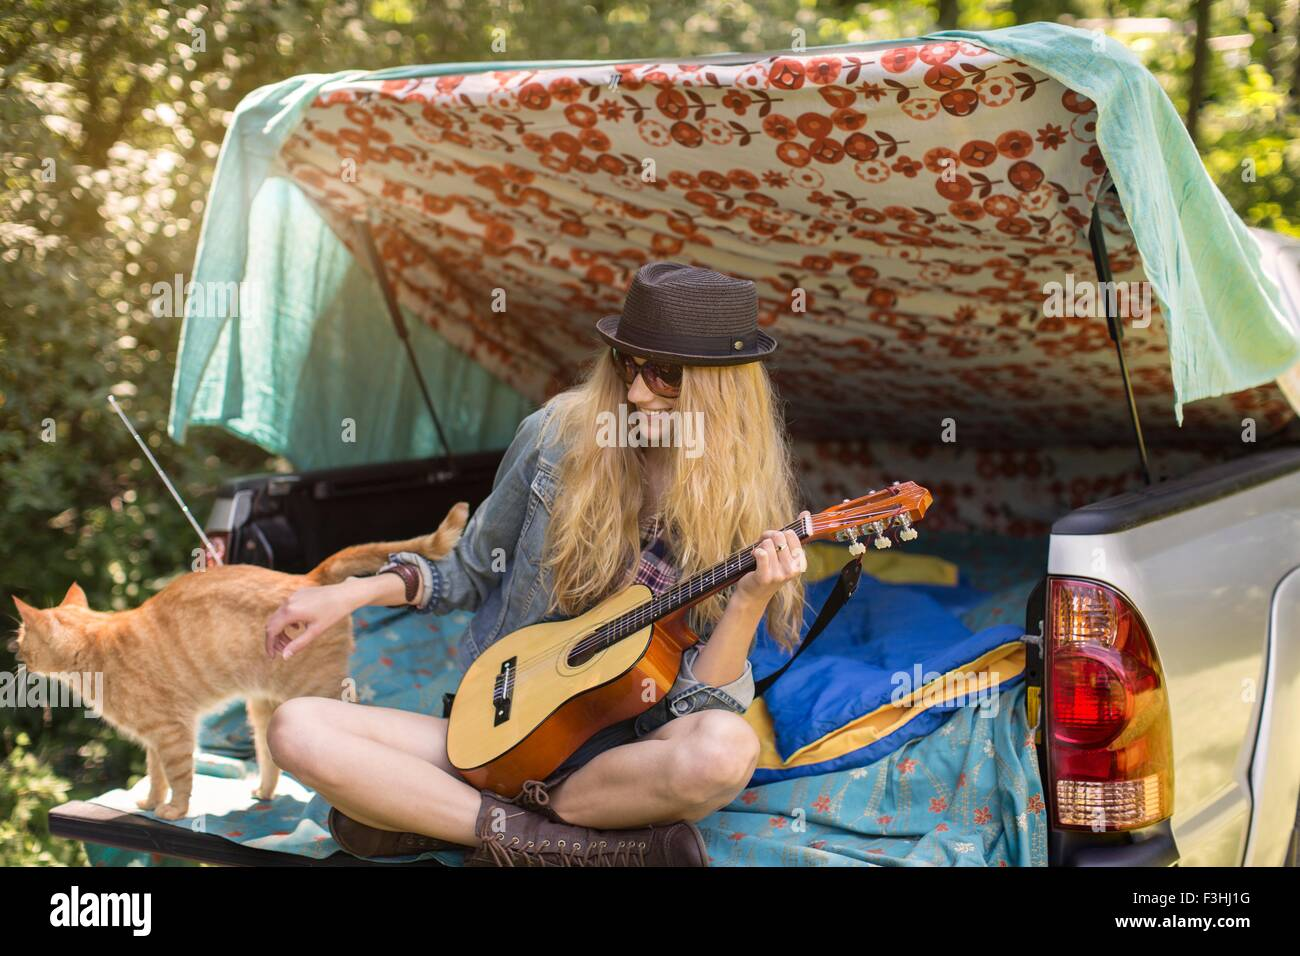 Young woman petting cat and playing ukulele whilst camping in pick up boot - Stock Image